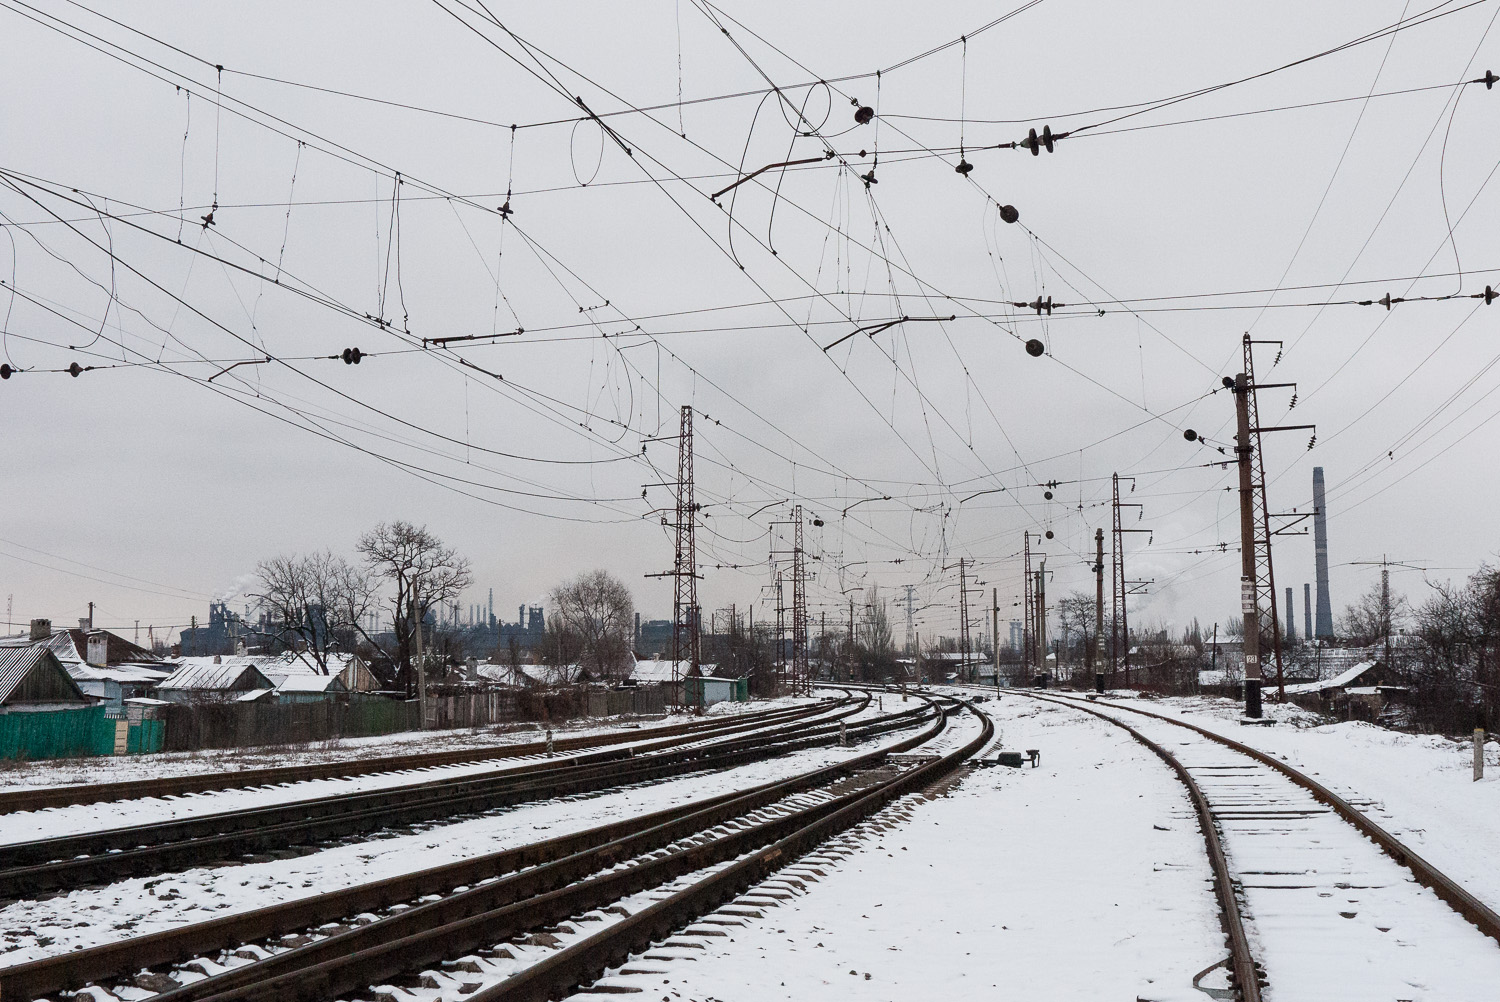 Railway lines in the city of Mariupol.